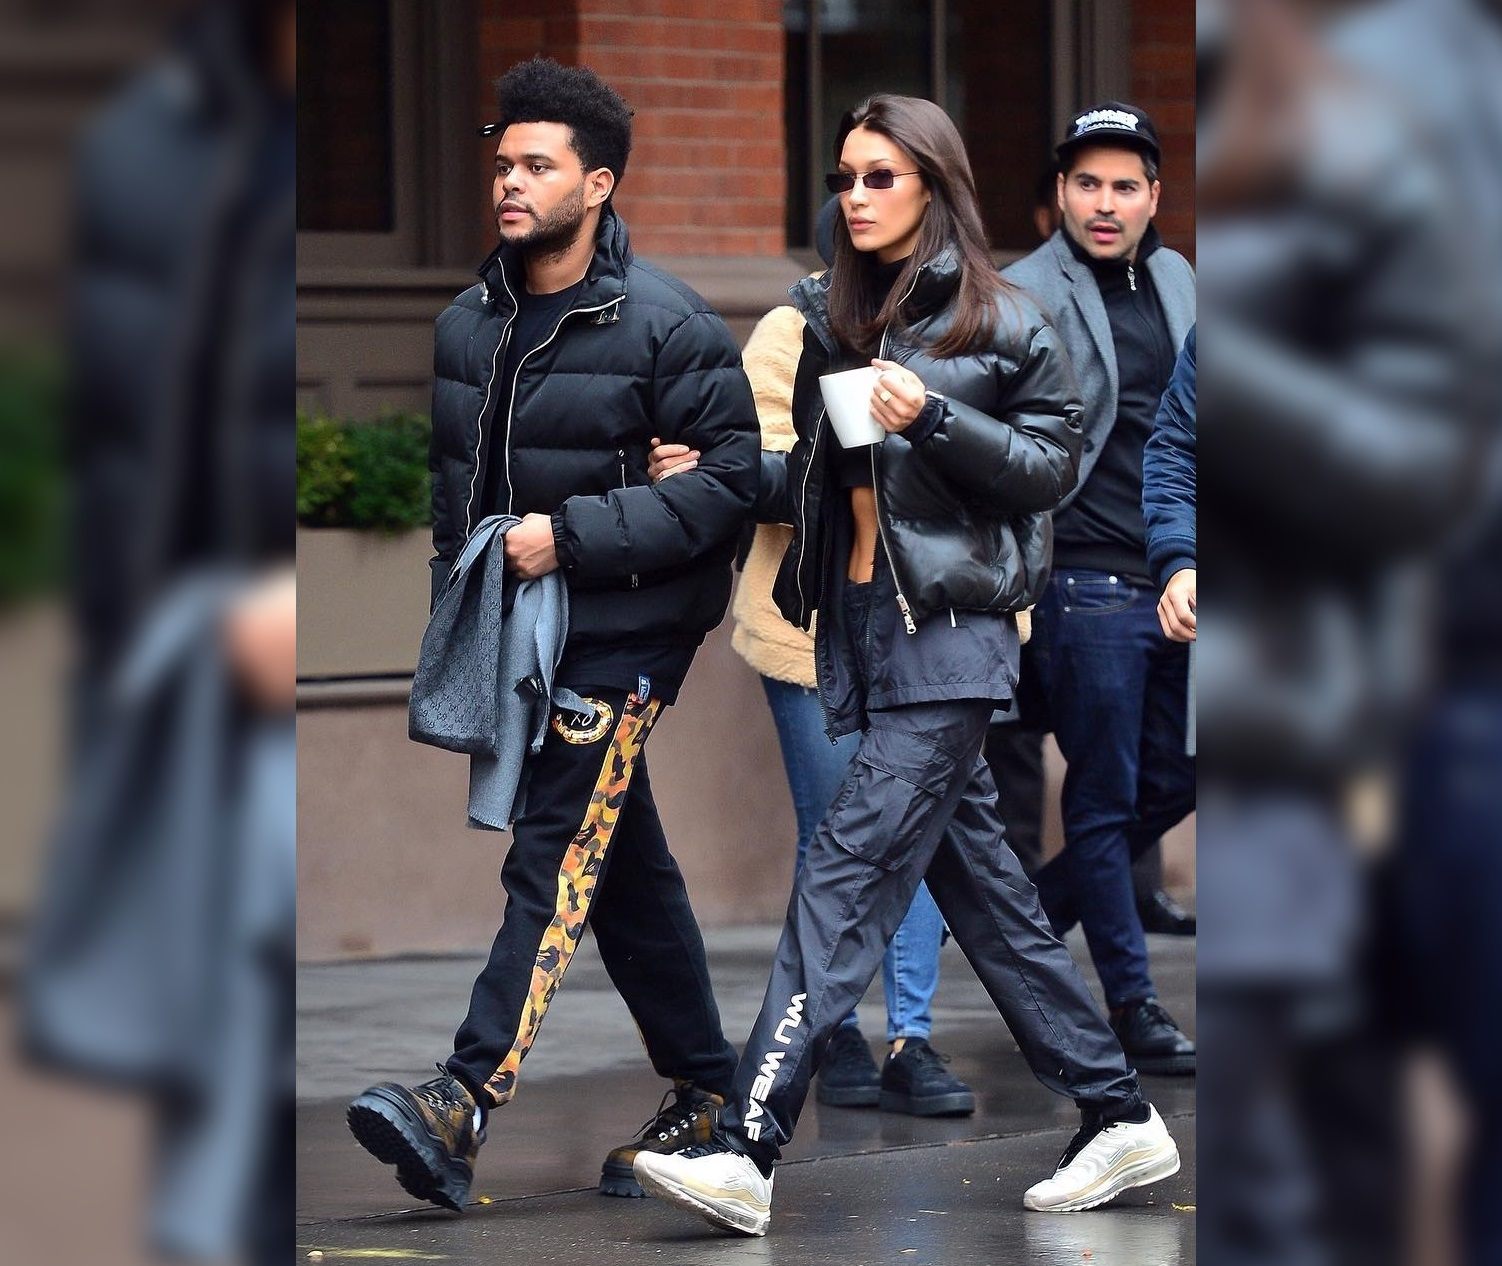 SPOTTED: The Weeknd and Bella Hadid Go Sleek with Wu Tang, BAPE, Nike and More